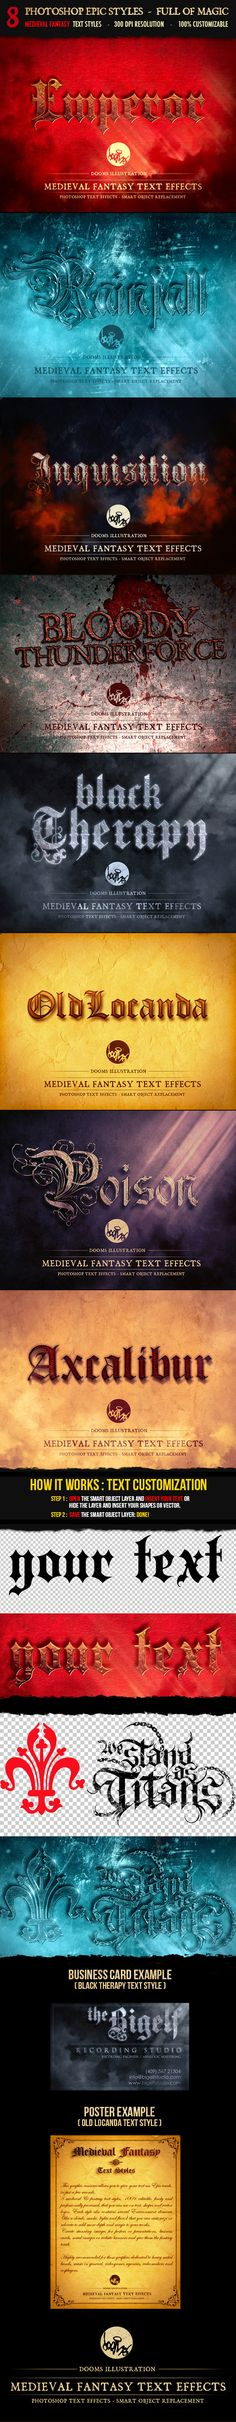 Medieval Fantasy Text Effects. Download here: http://graphicriver.net/item/medieval-fantasy-text-effects-/8641334?ref=ksioks